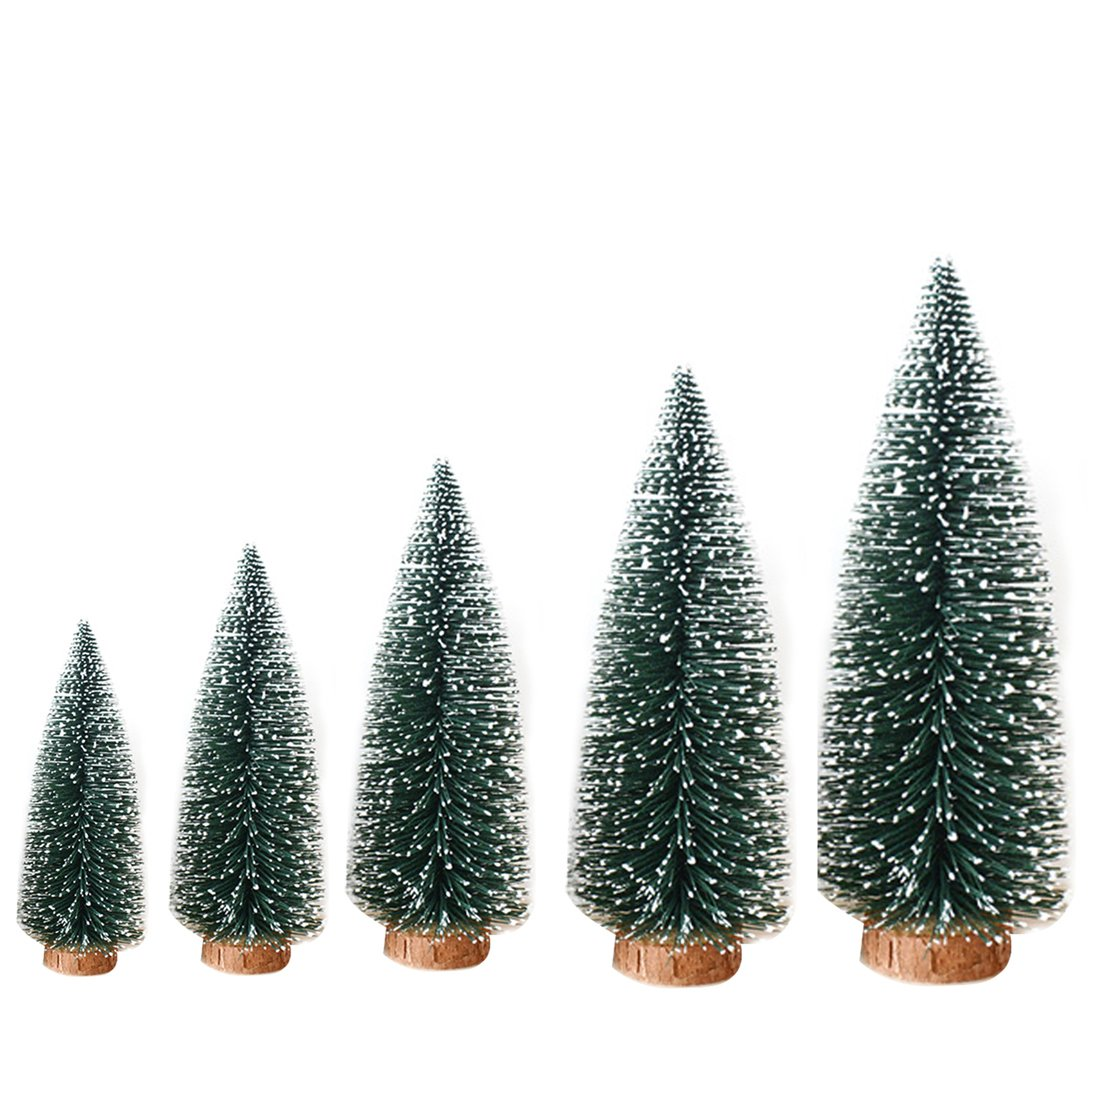 1pcs Artificial Tabletop Mini Pine Christmas Trees Decorations Festival Miniature Xmas Tree with Wood Look Base 5 Size